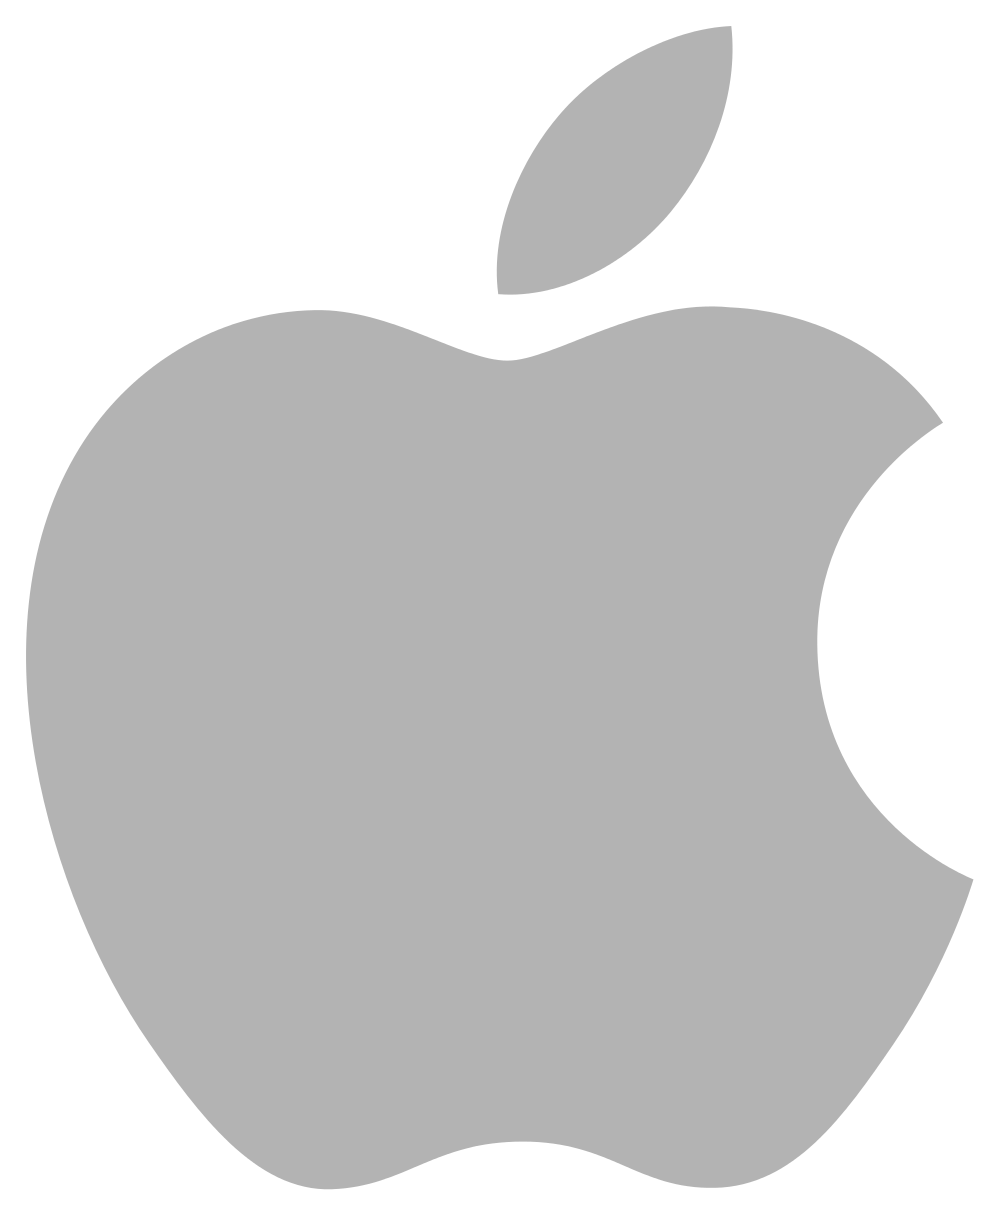 apple_logo_PNG19670.png